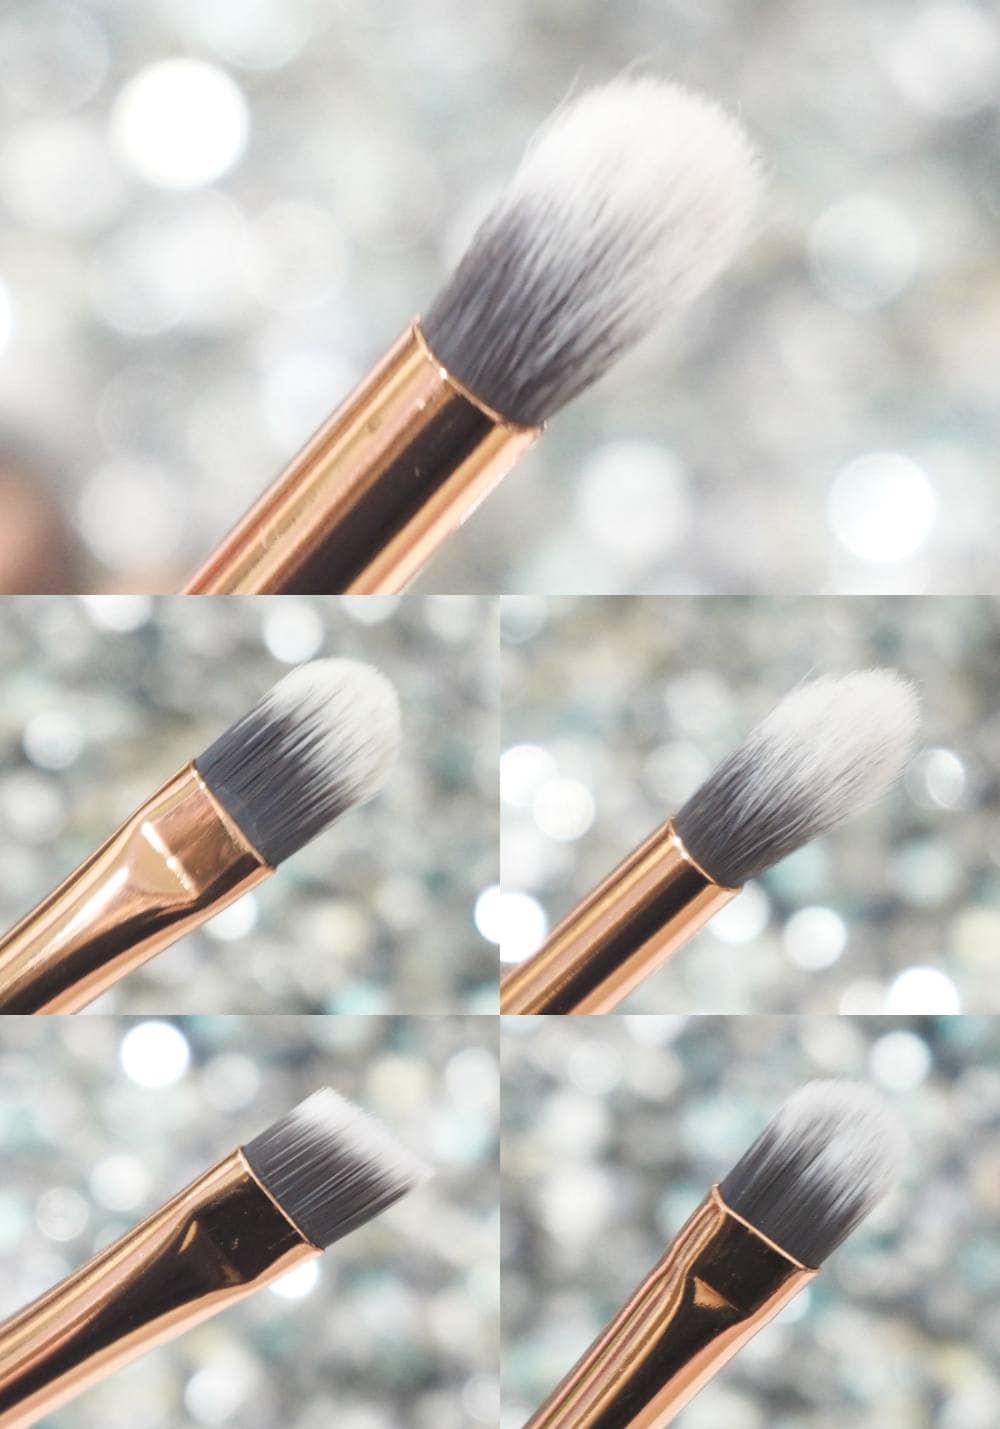 £6 AliExpress 10 Piece Marble Makeup Brush Set